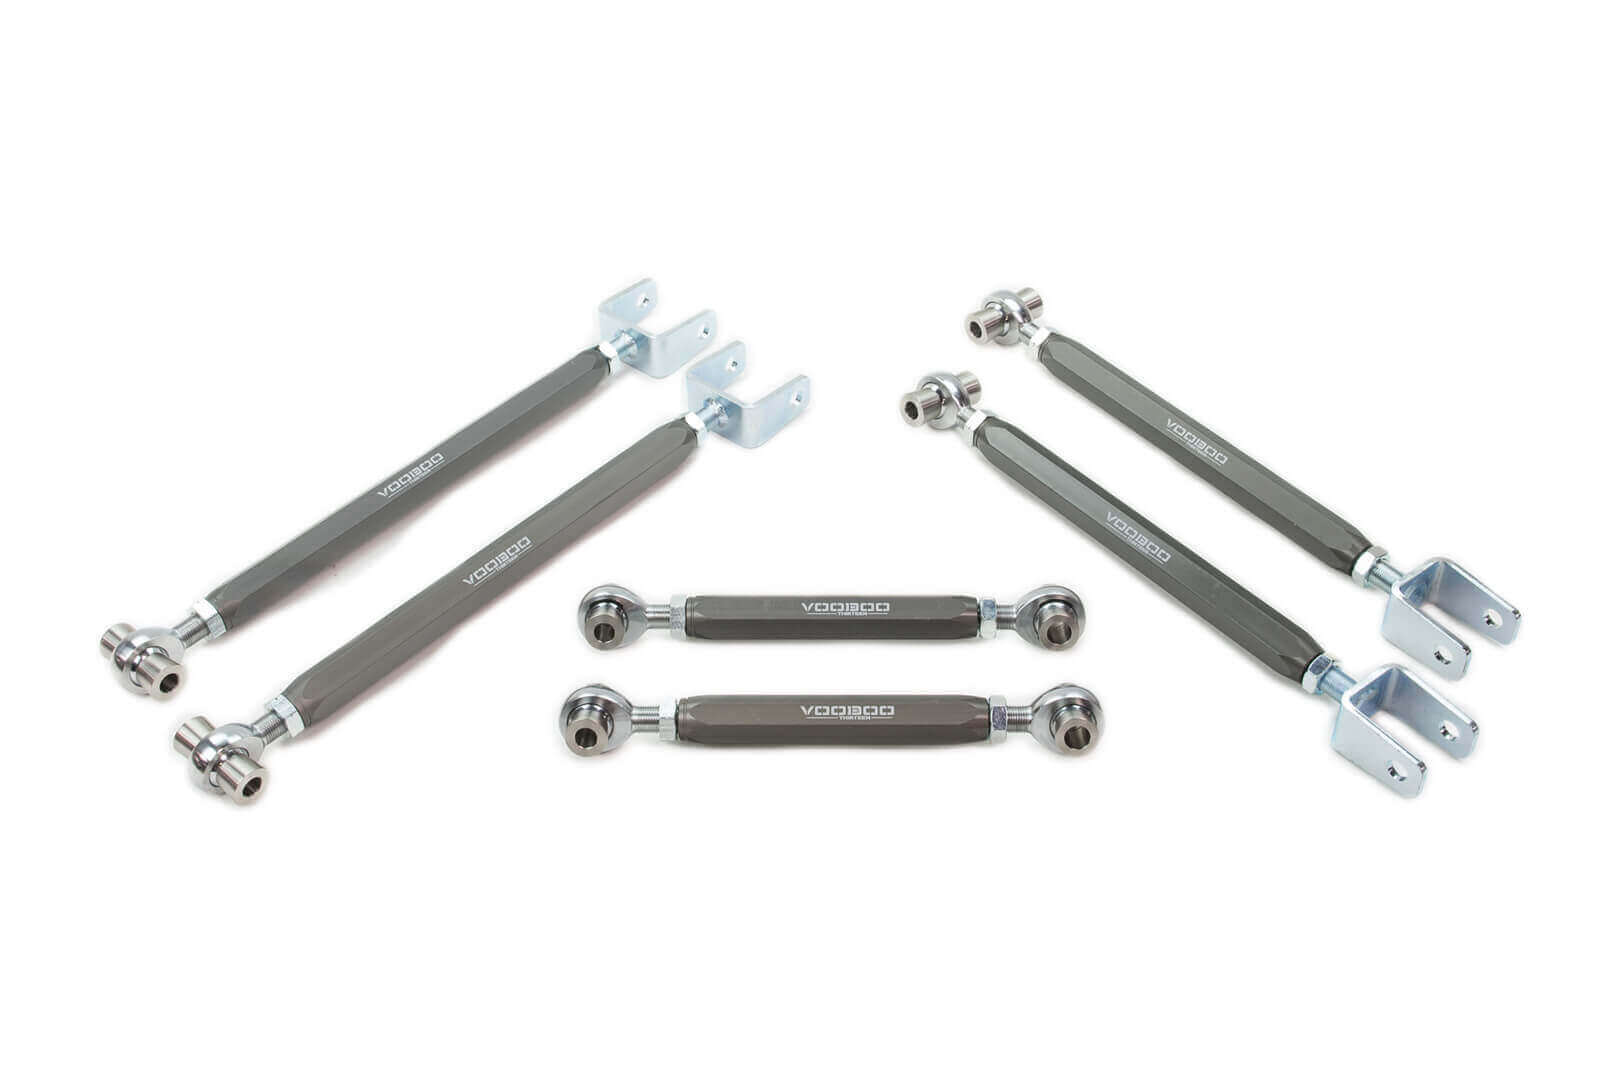 Voodoo 13 RCHN-0750HC - Rear Adjustable Arm Kit